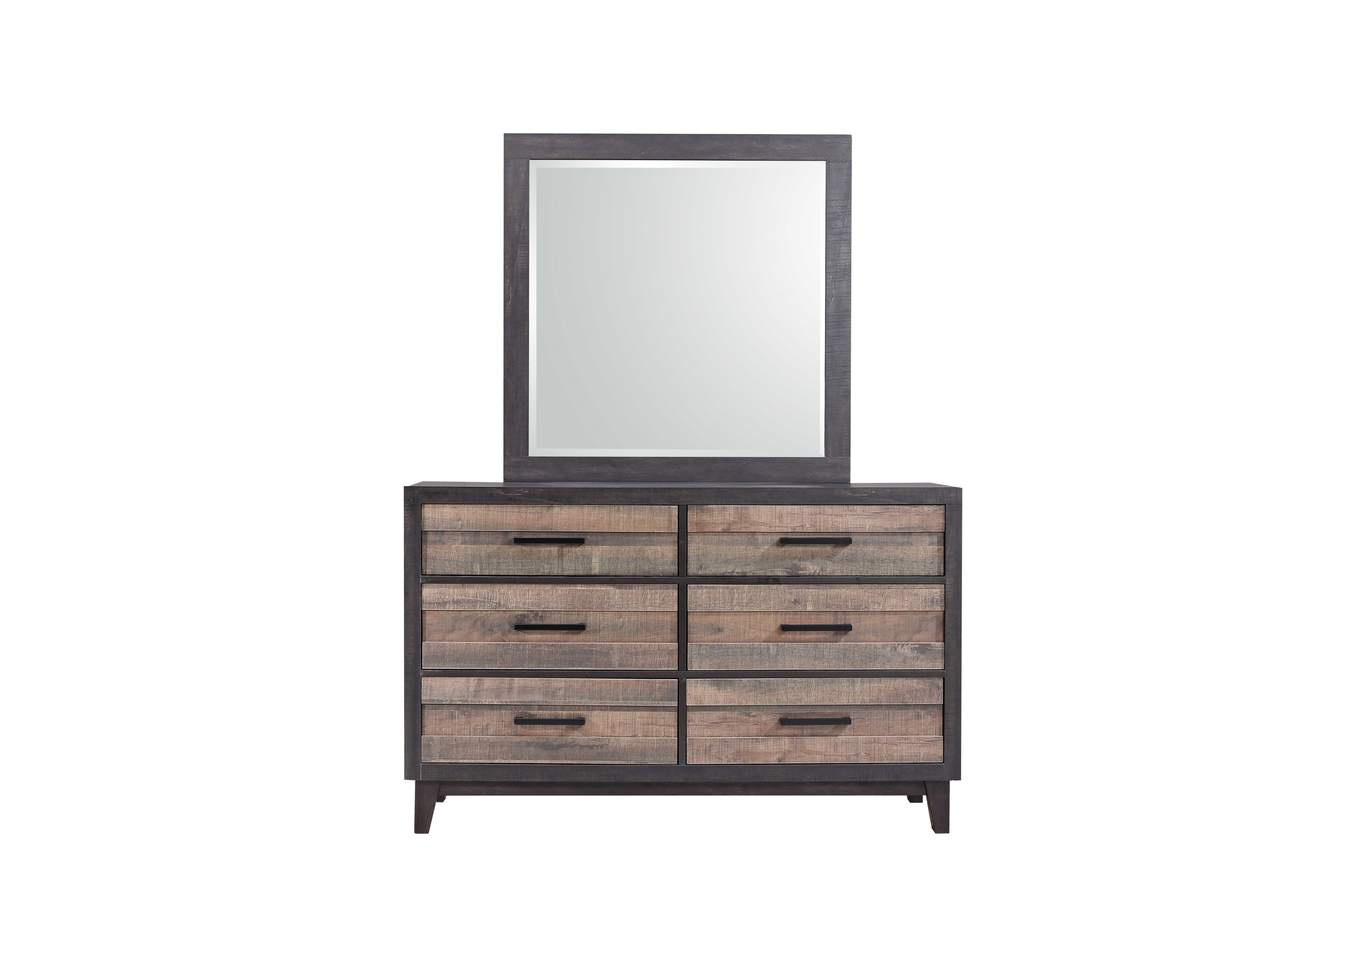 Tacoma 2 Tone Dresser,Crown Mark